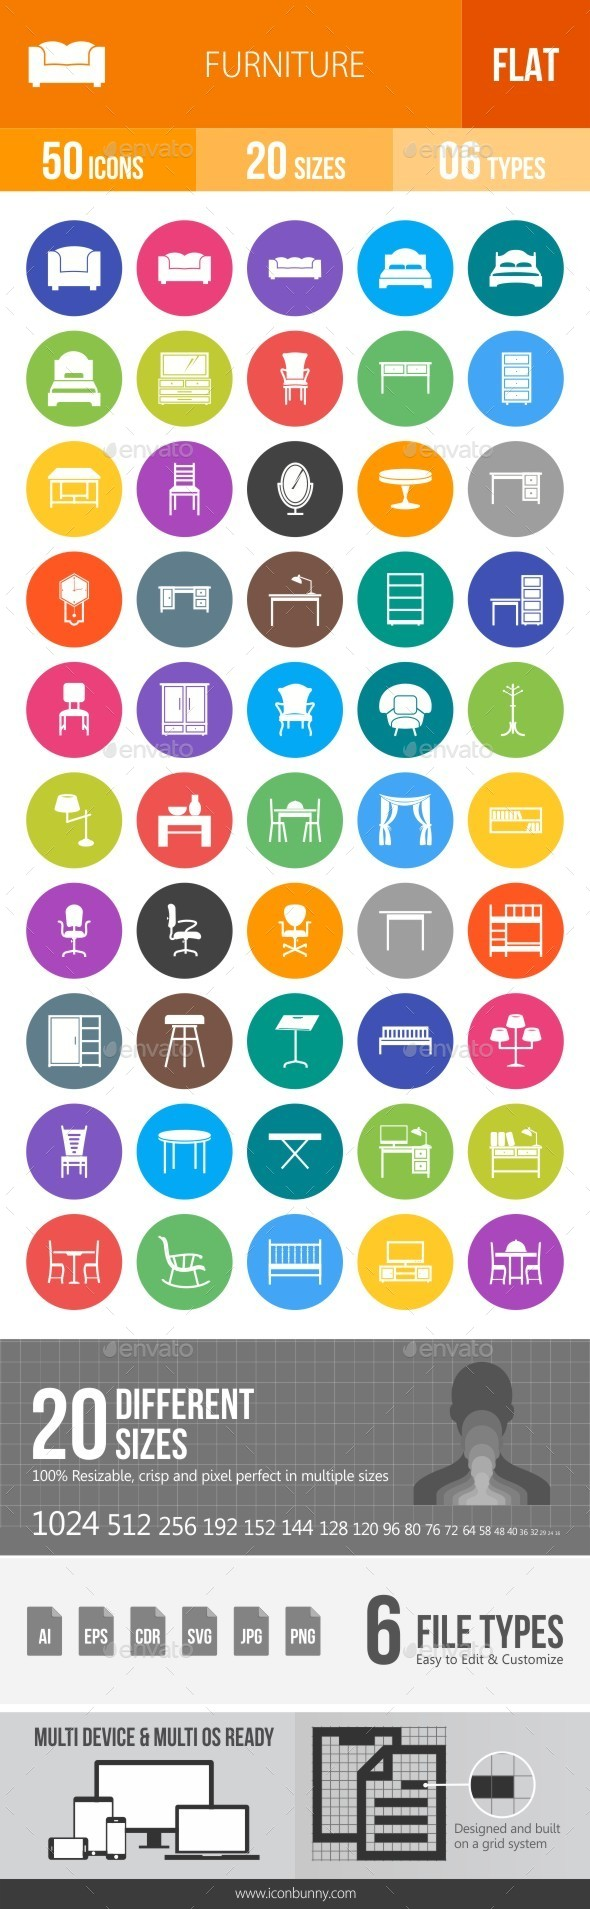 Furniture Flat Round Icons - Icons